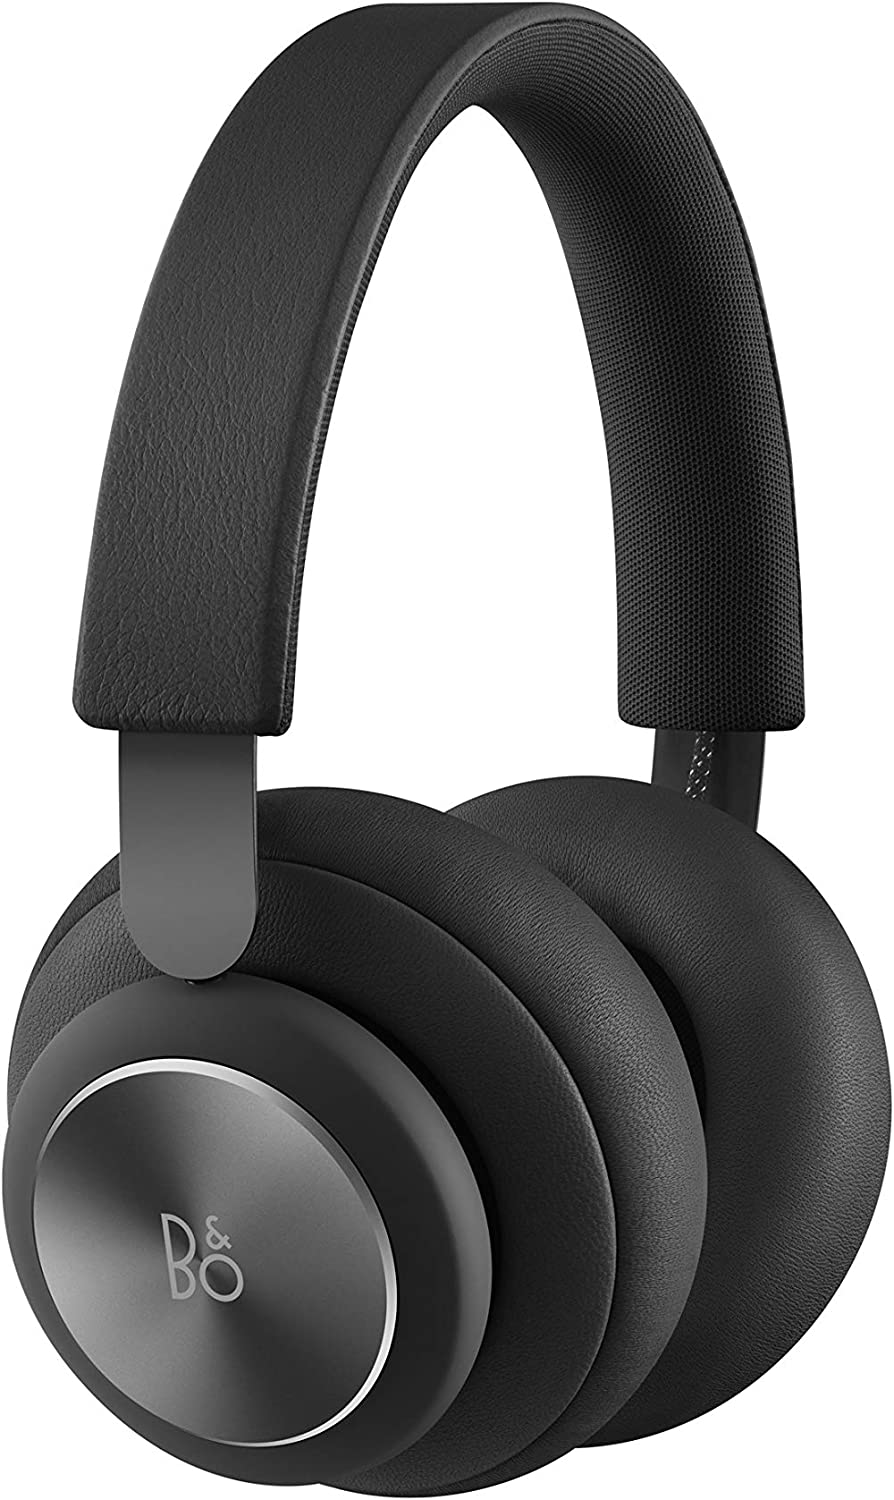 Bang & Olufsen Beoplay H4 2nd Generation Over-Ear Headphones, Matte Black